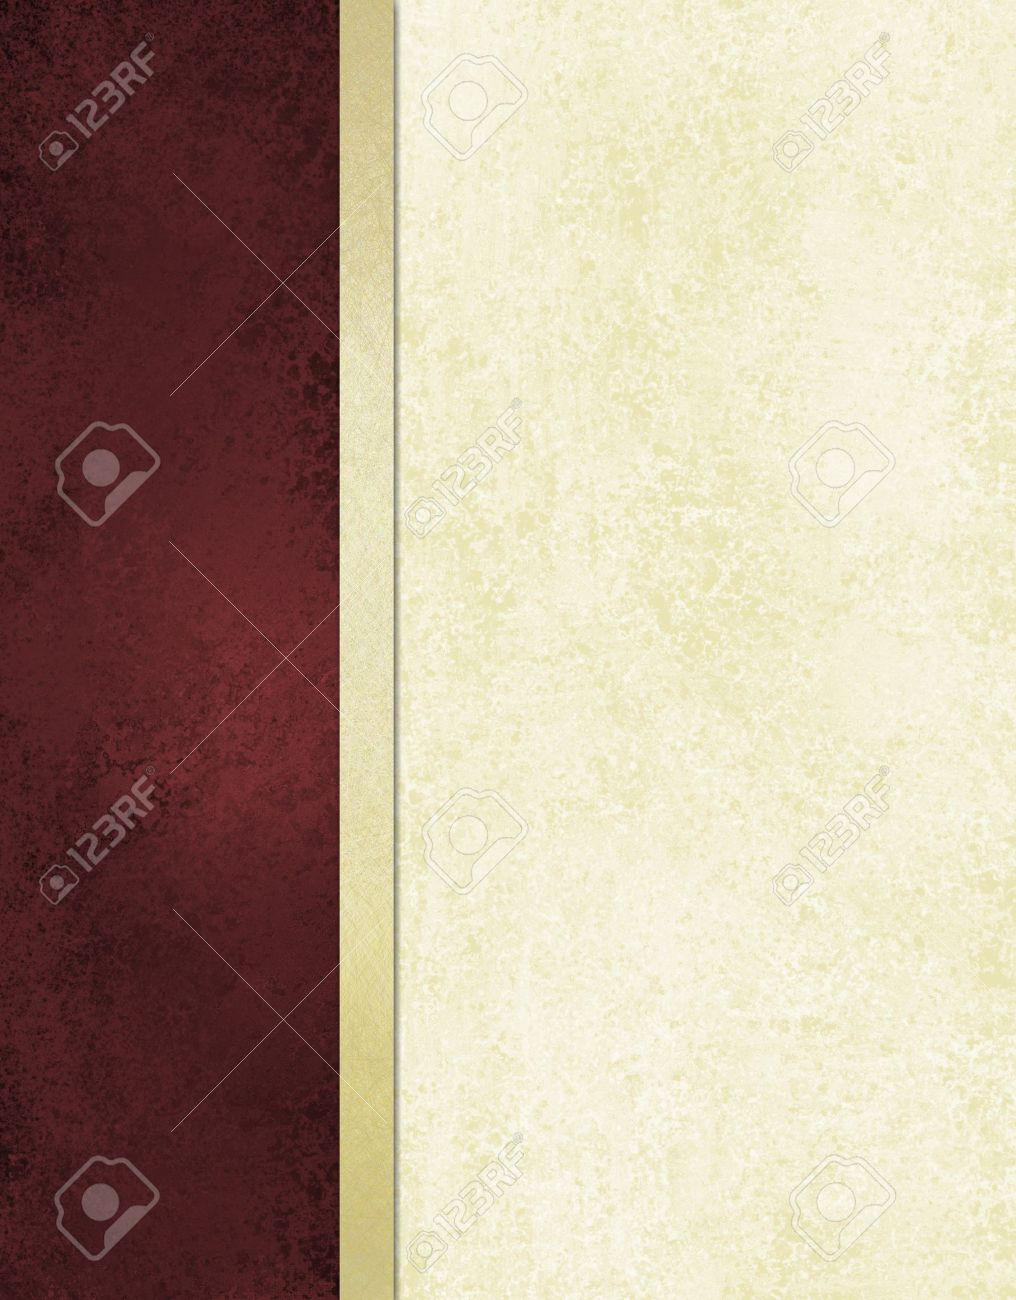 elegant book cover or journal album paper, white background with burgundy red side bar and gold ribbon stripe along border of frame, formal menu or website template, vintage grunge background texture Stock Photo - 14674423